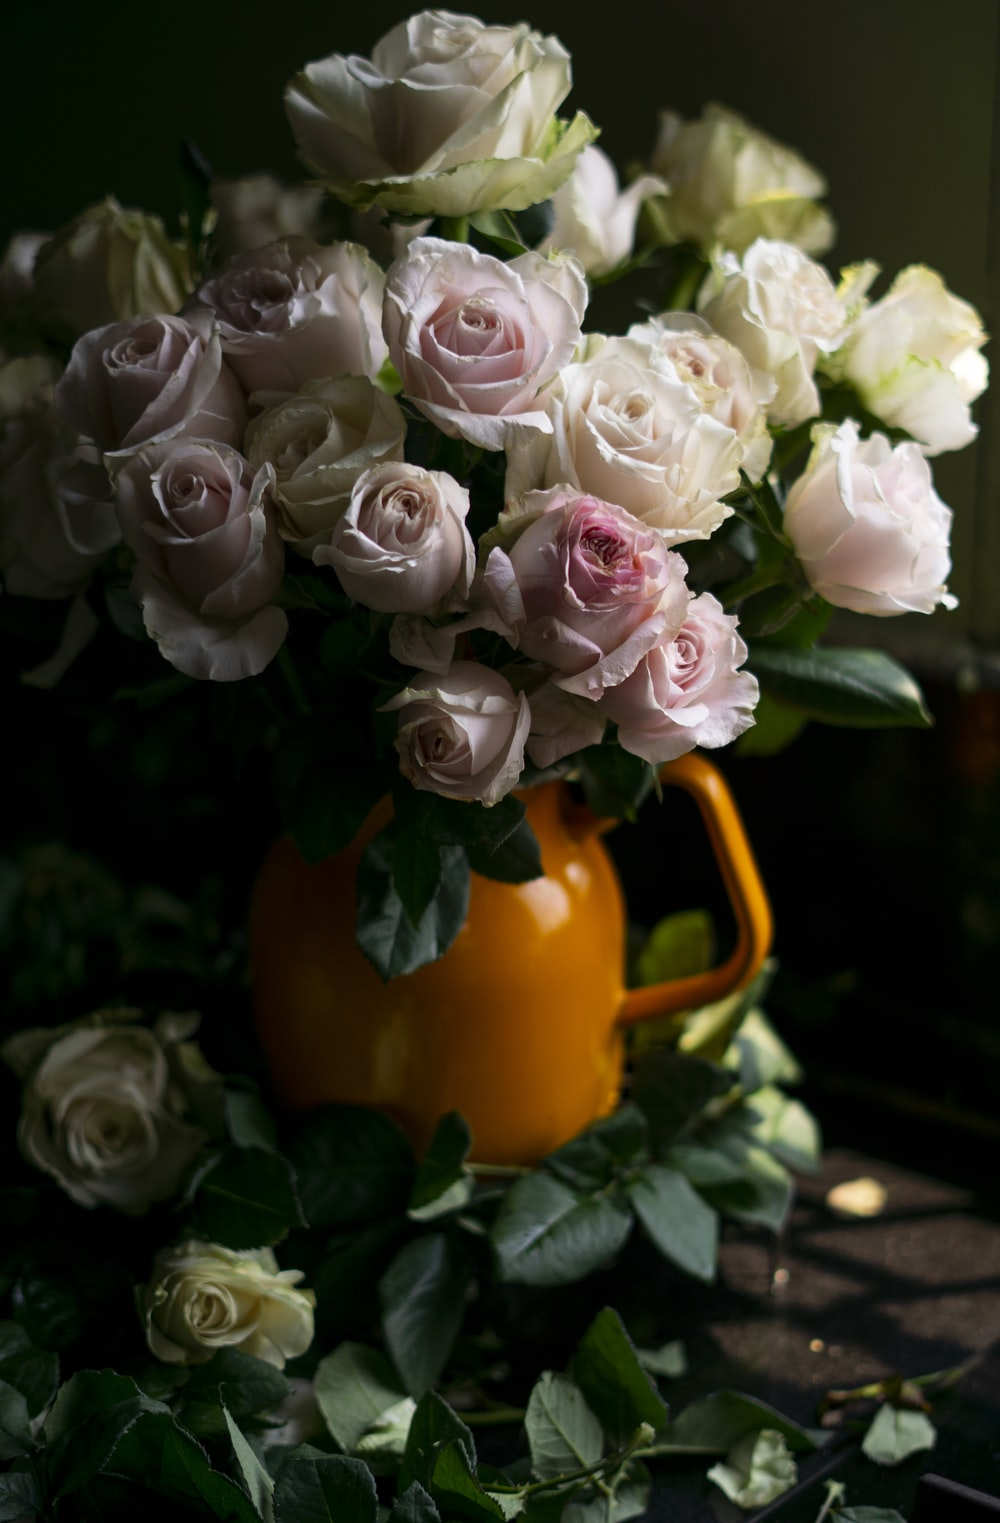 a bouquet of white and pink flowers on an orange pot